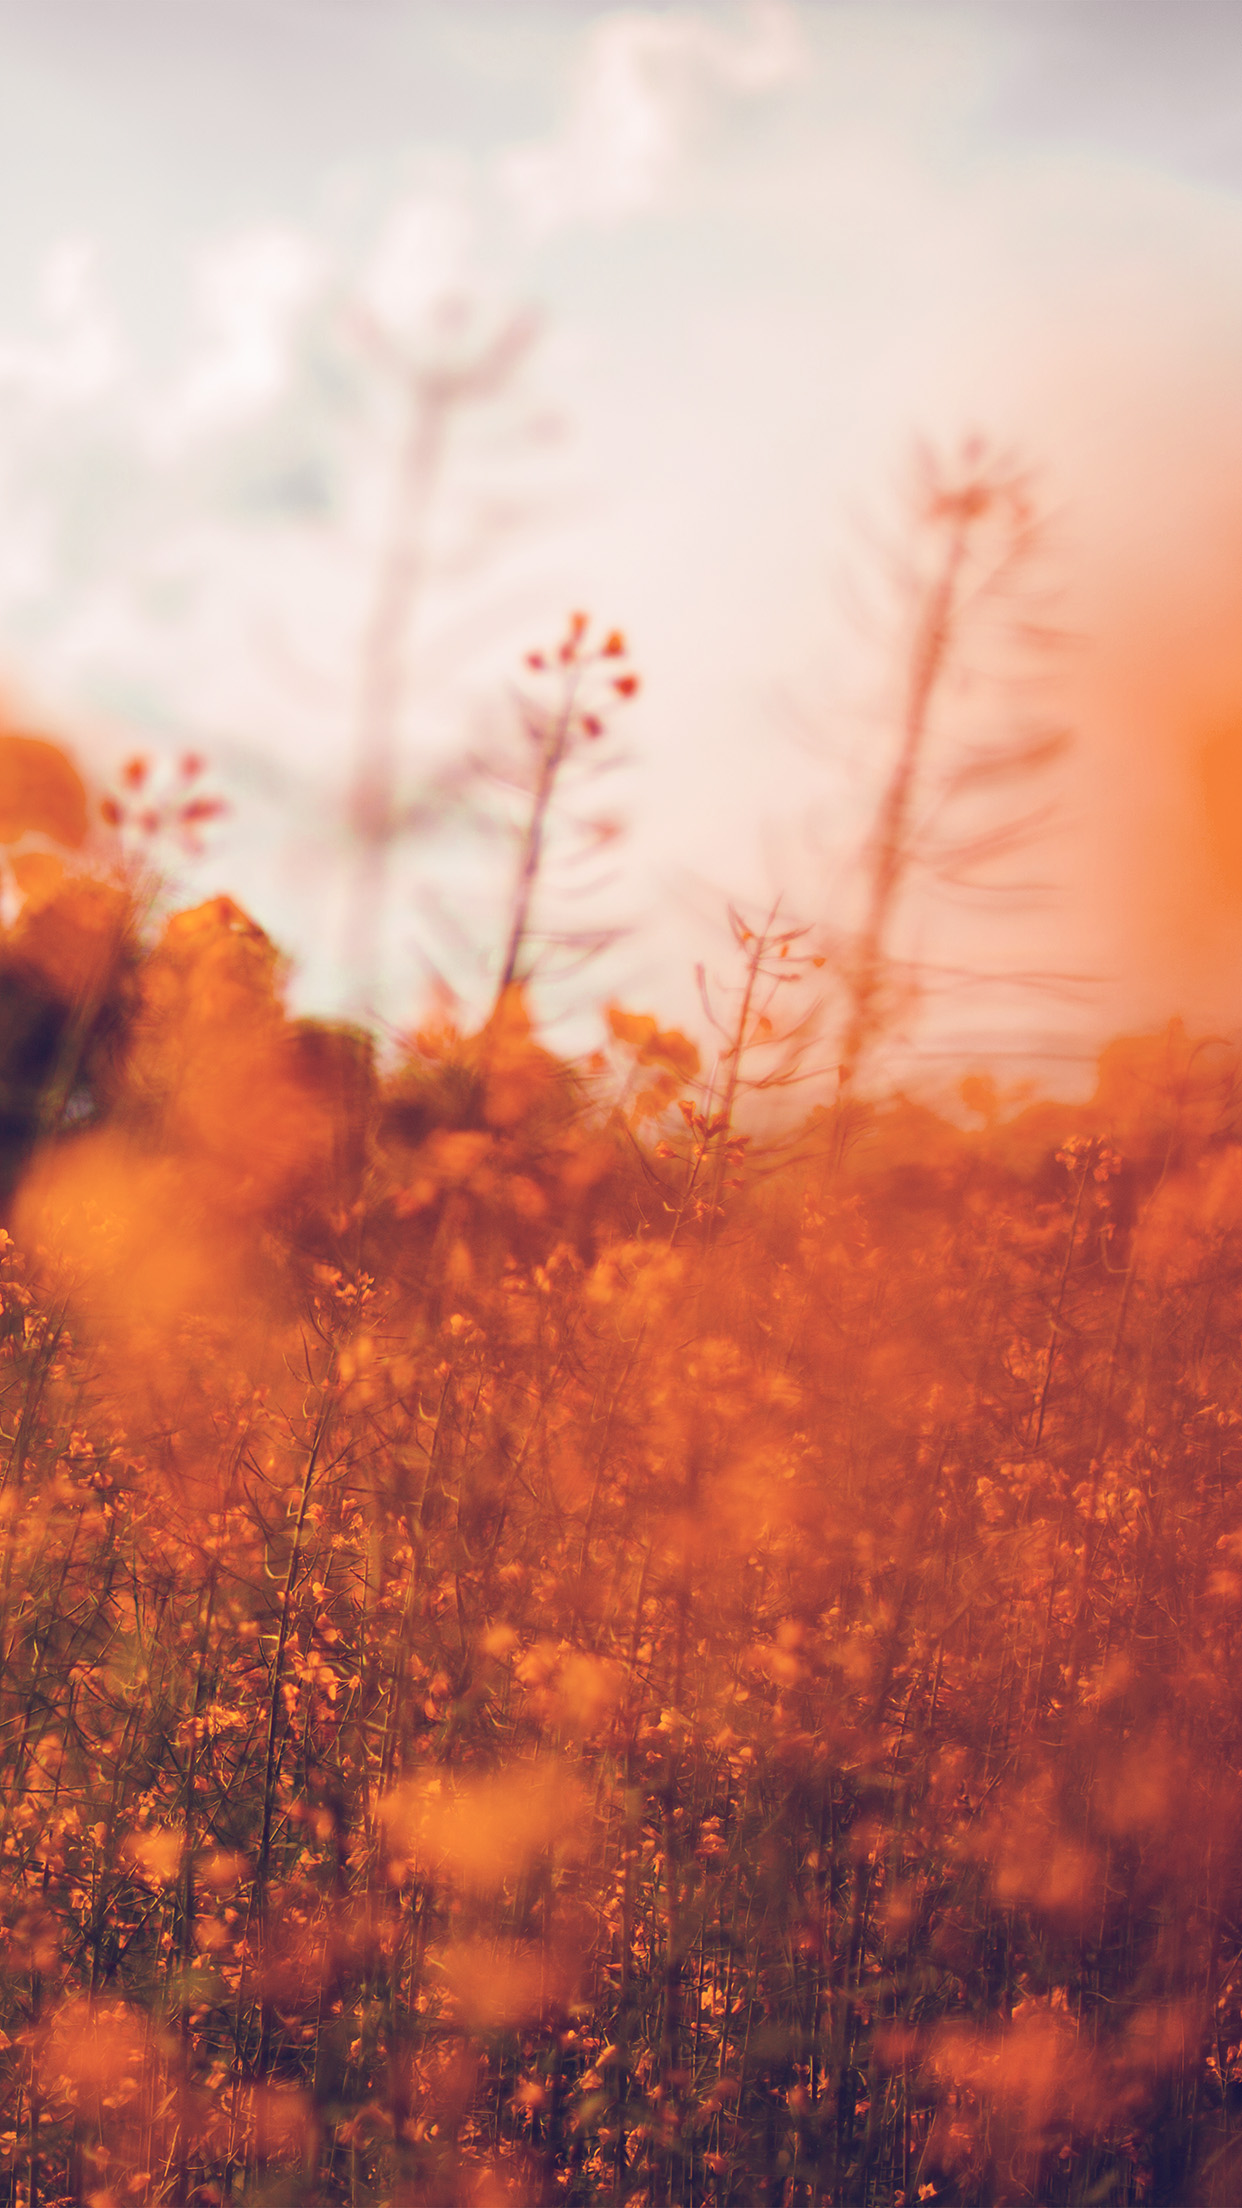 Happy Fall Wallpapers Papers Co Iphone Wallpaper Mw21 Nature Orange Flower